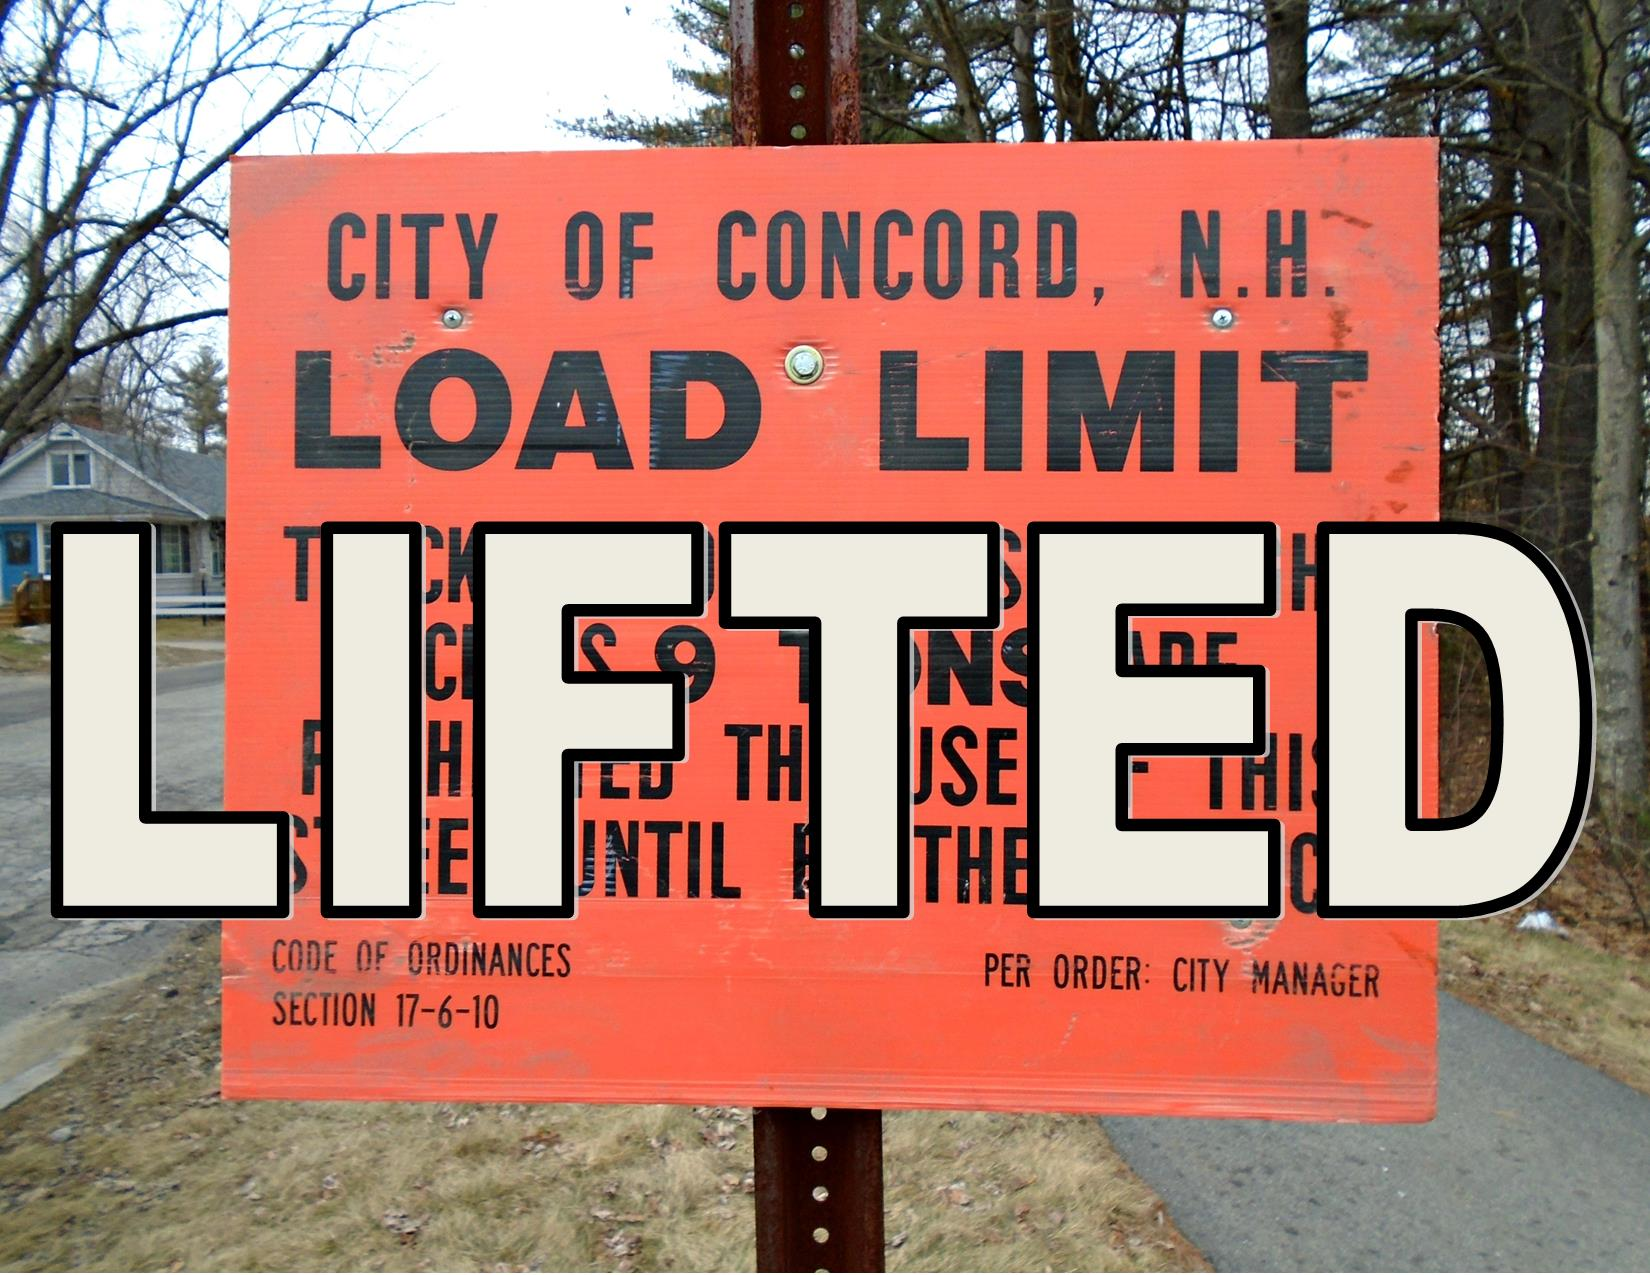 Road Load Limited Lifted